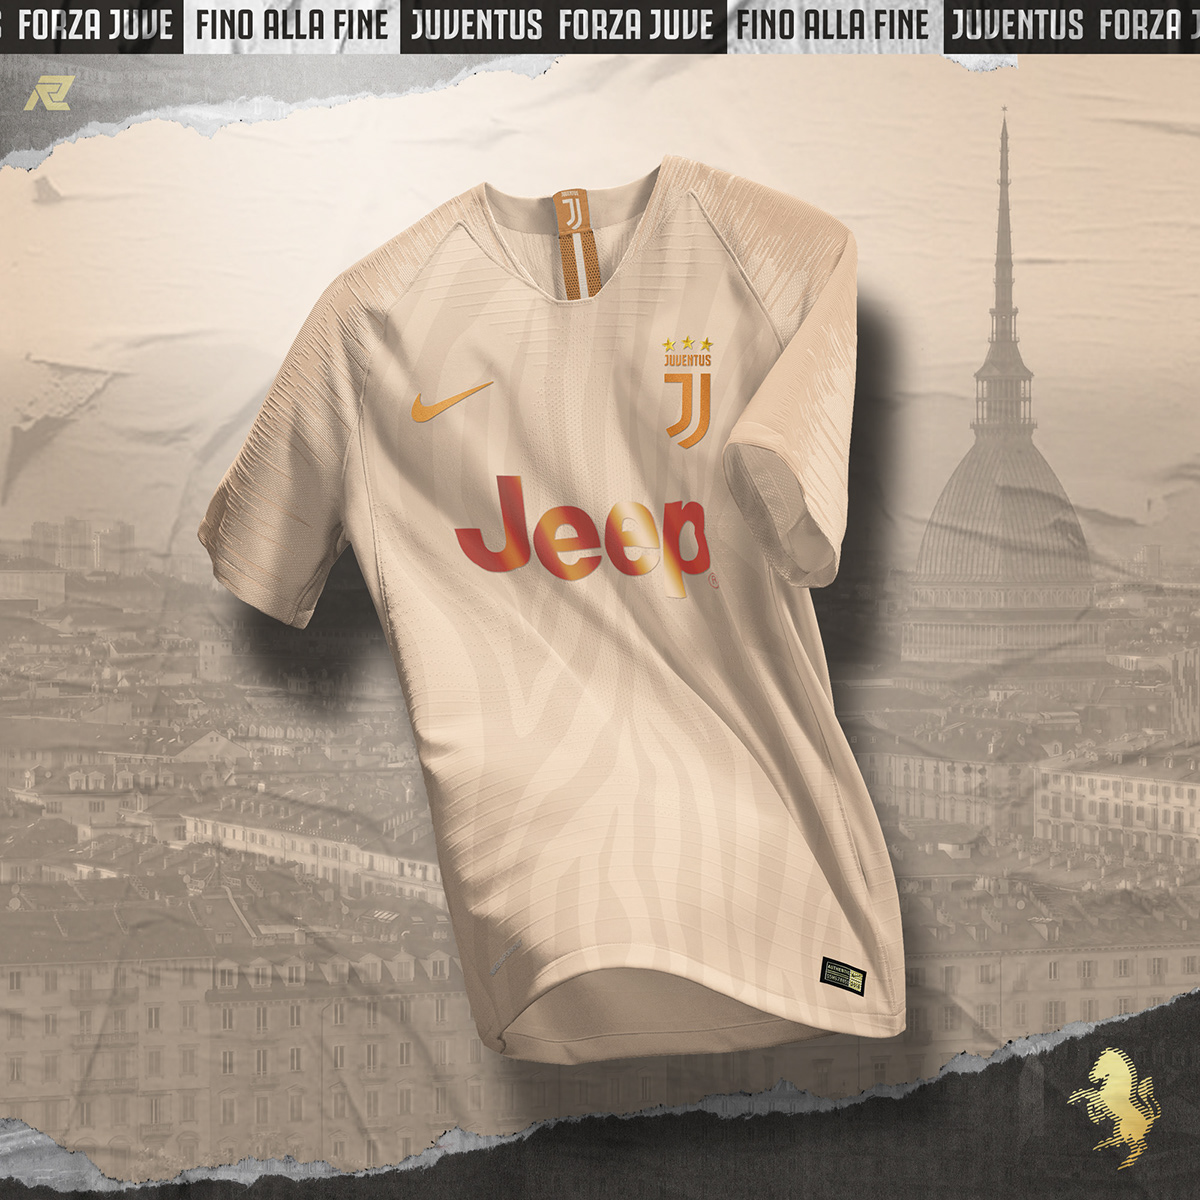 reputable site ce5f1 6cc7d NIKE x JUVENTUS Concept on Pantone Canvas Gallery